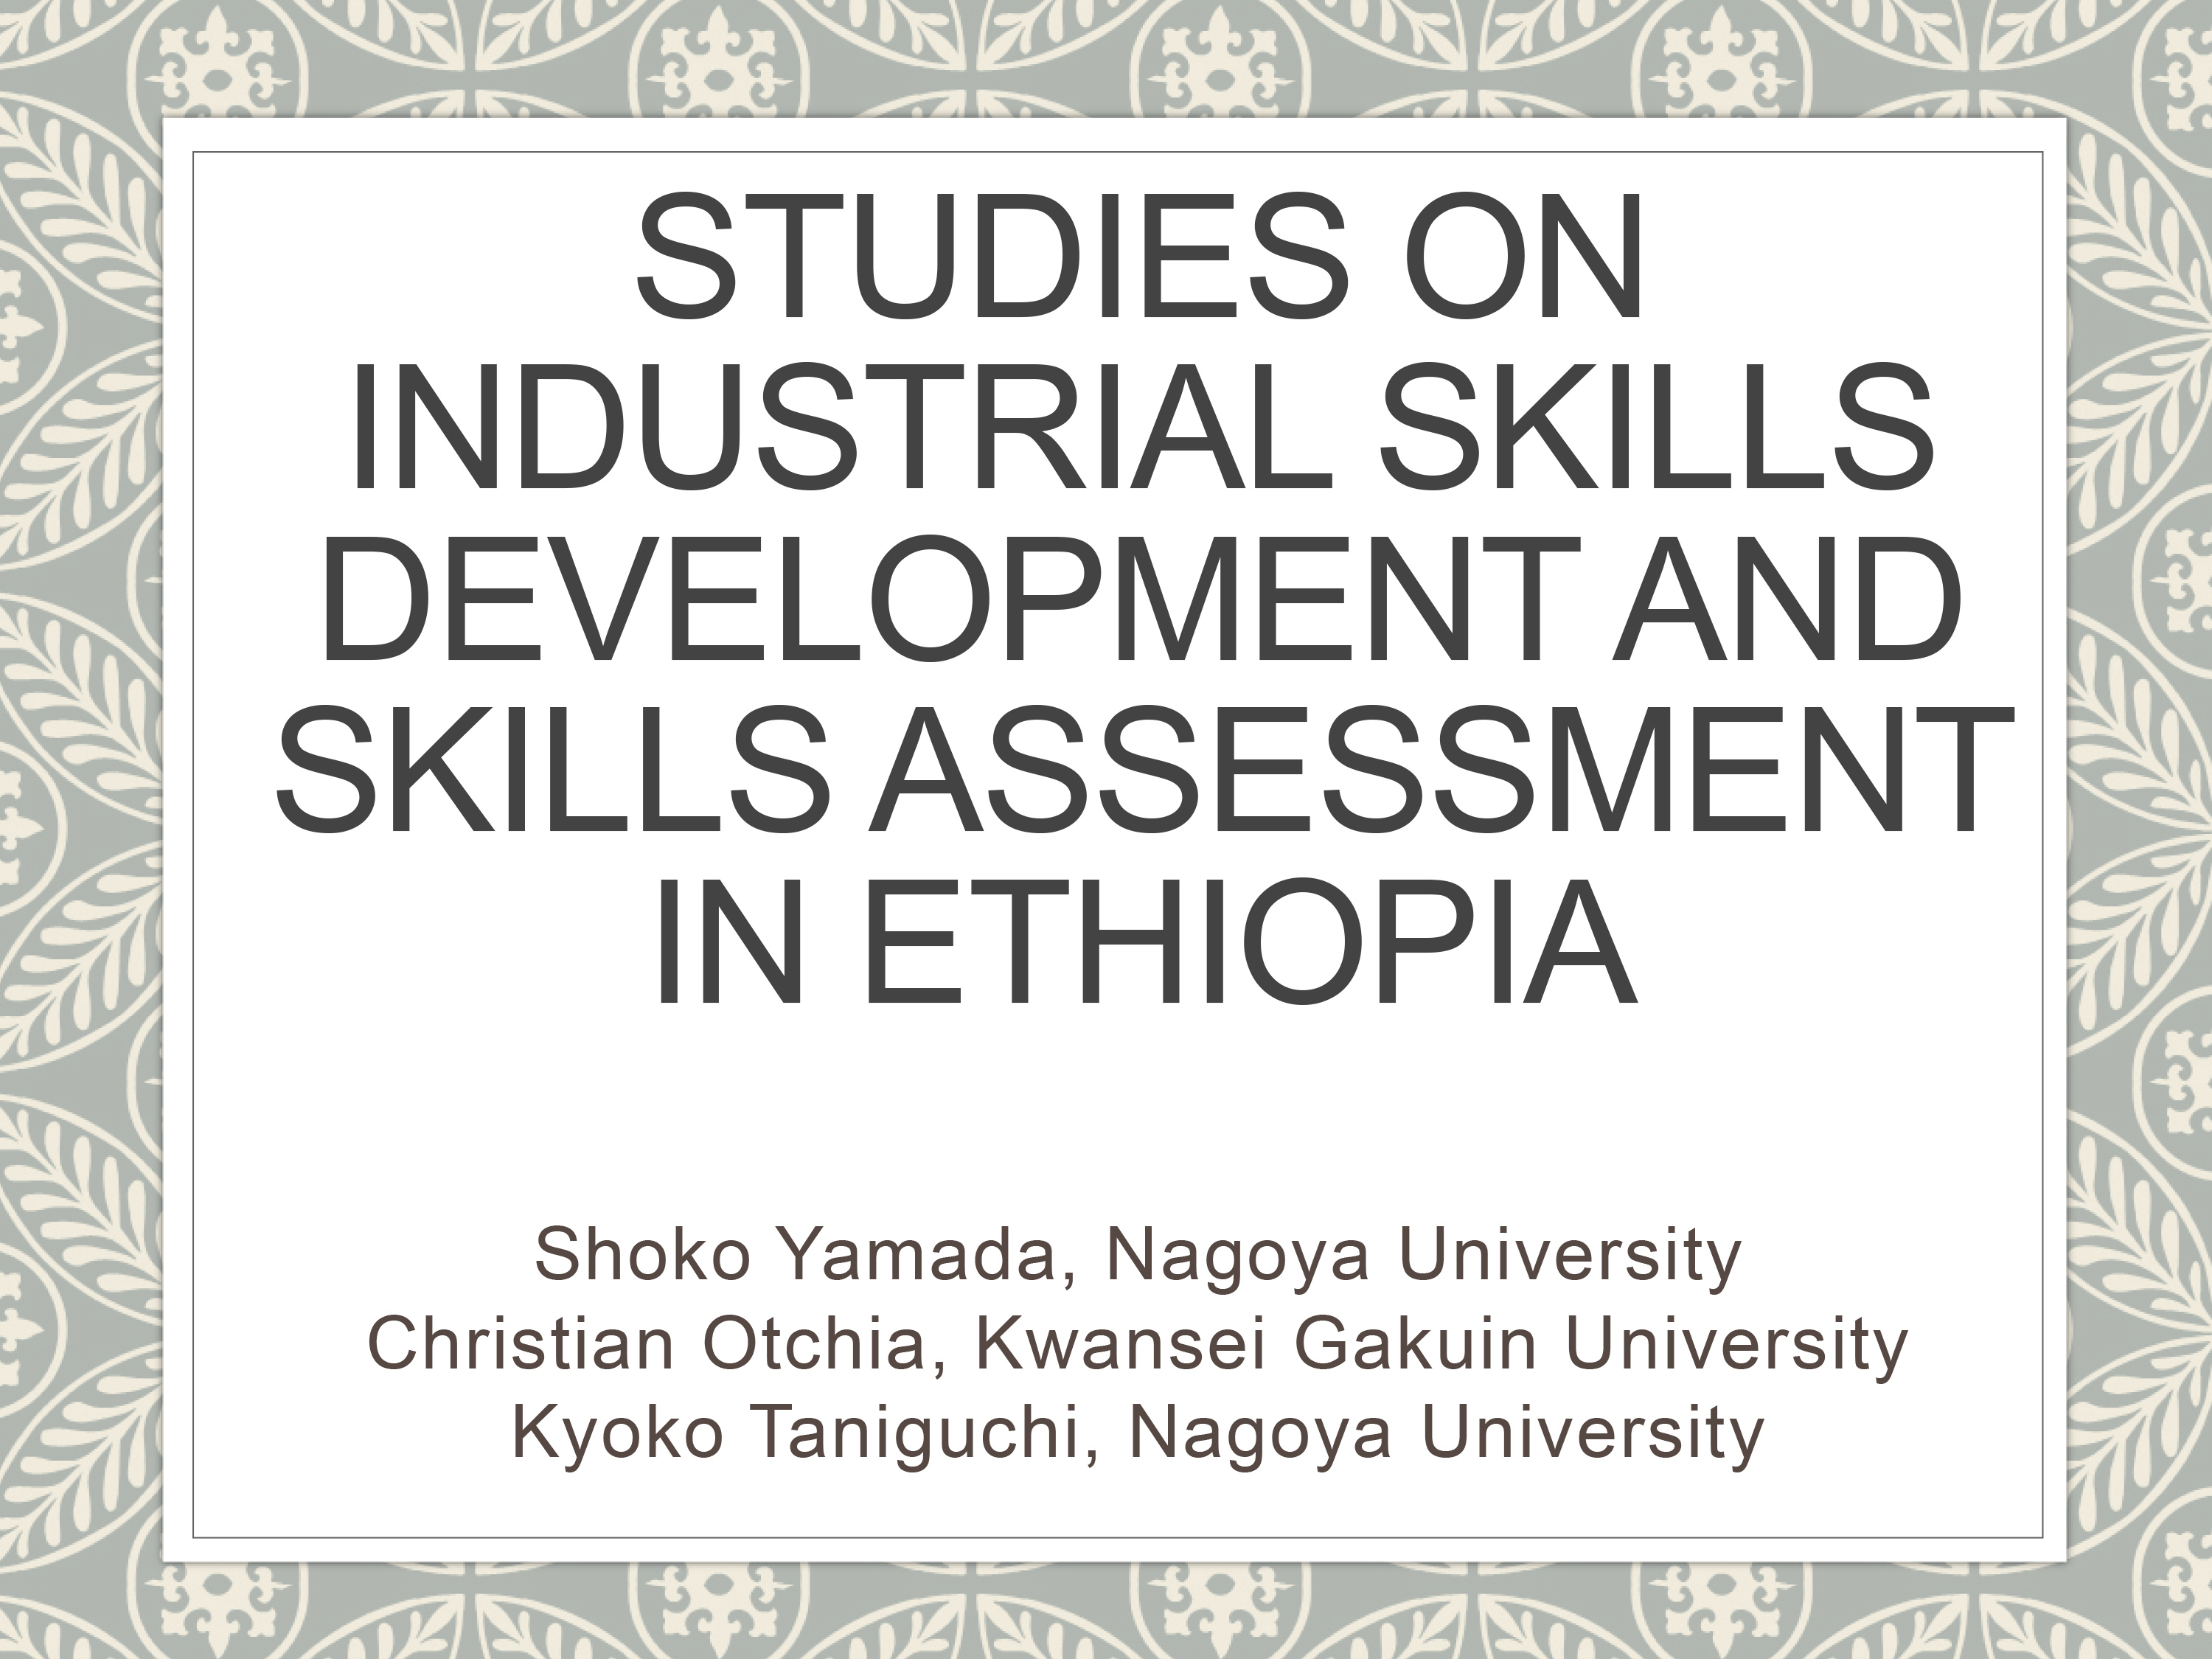 Studies on Industrial Skills Development and Skills Assessment in Ethiopia